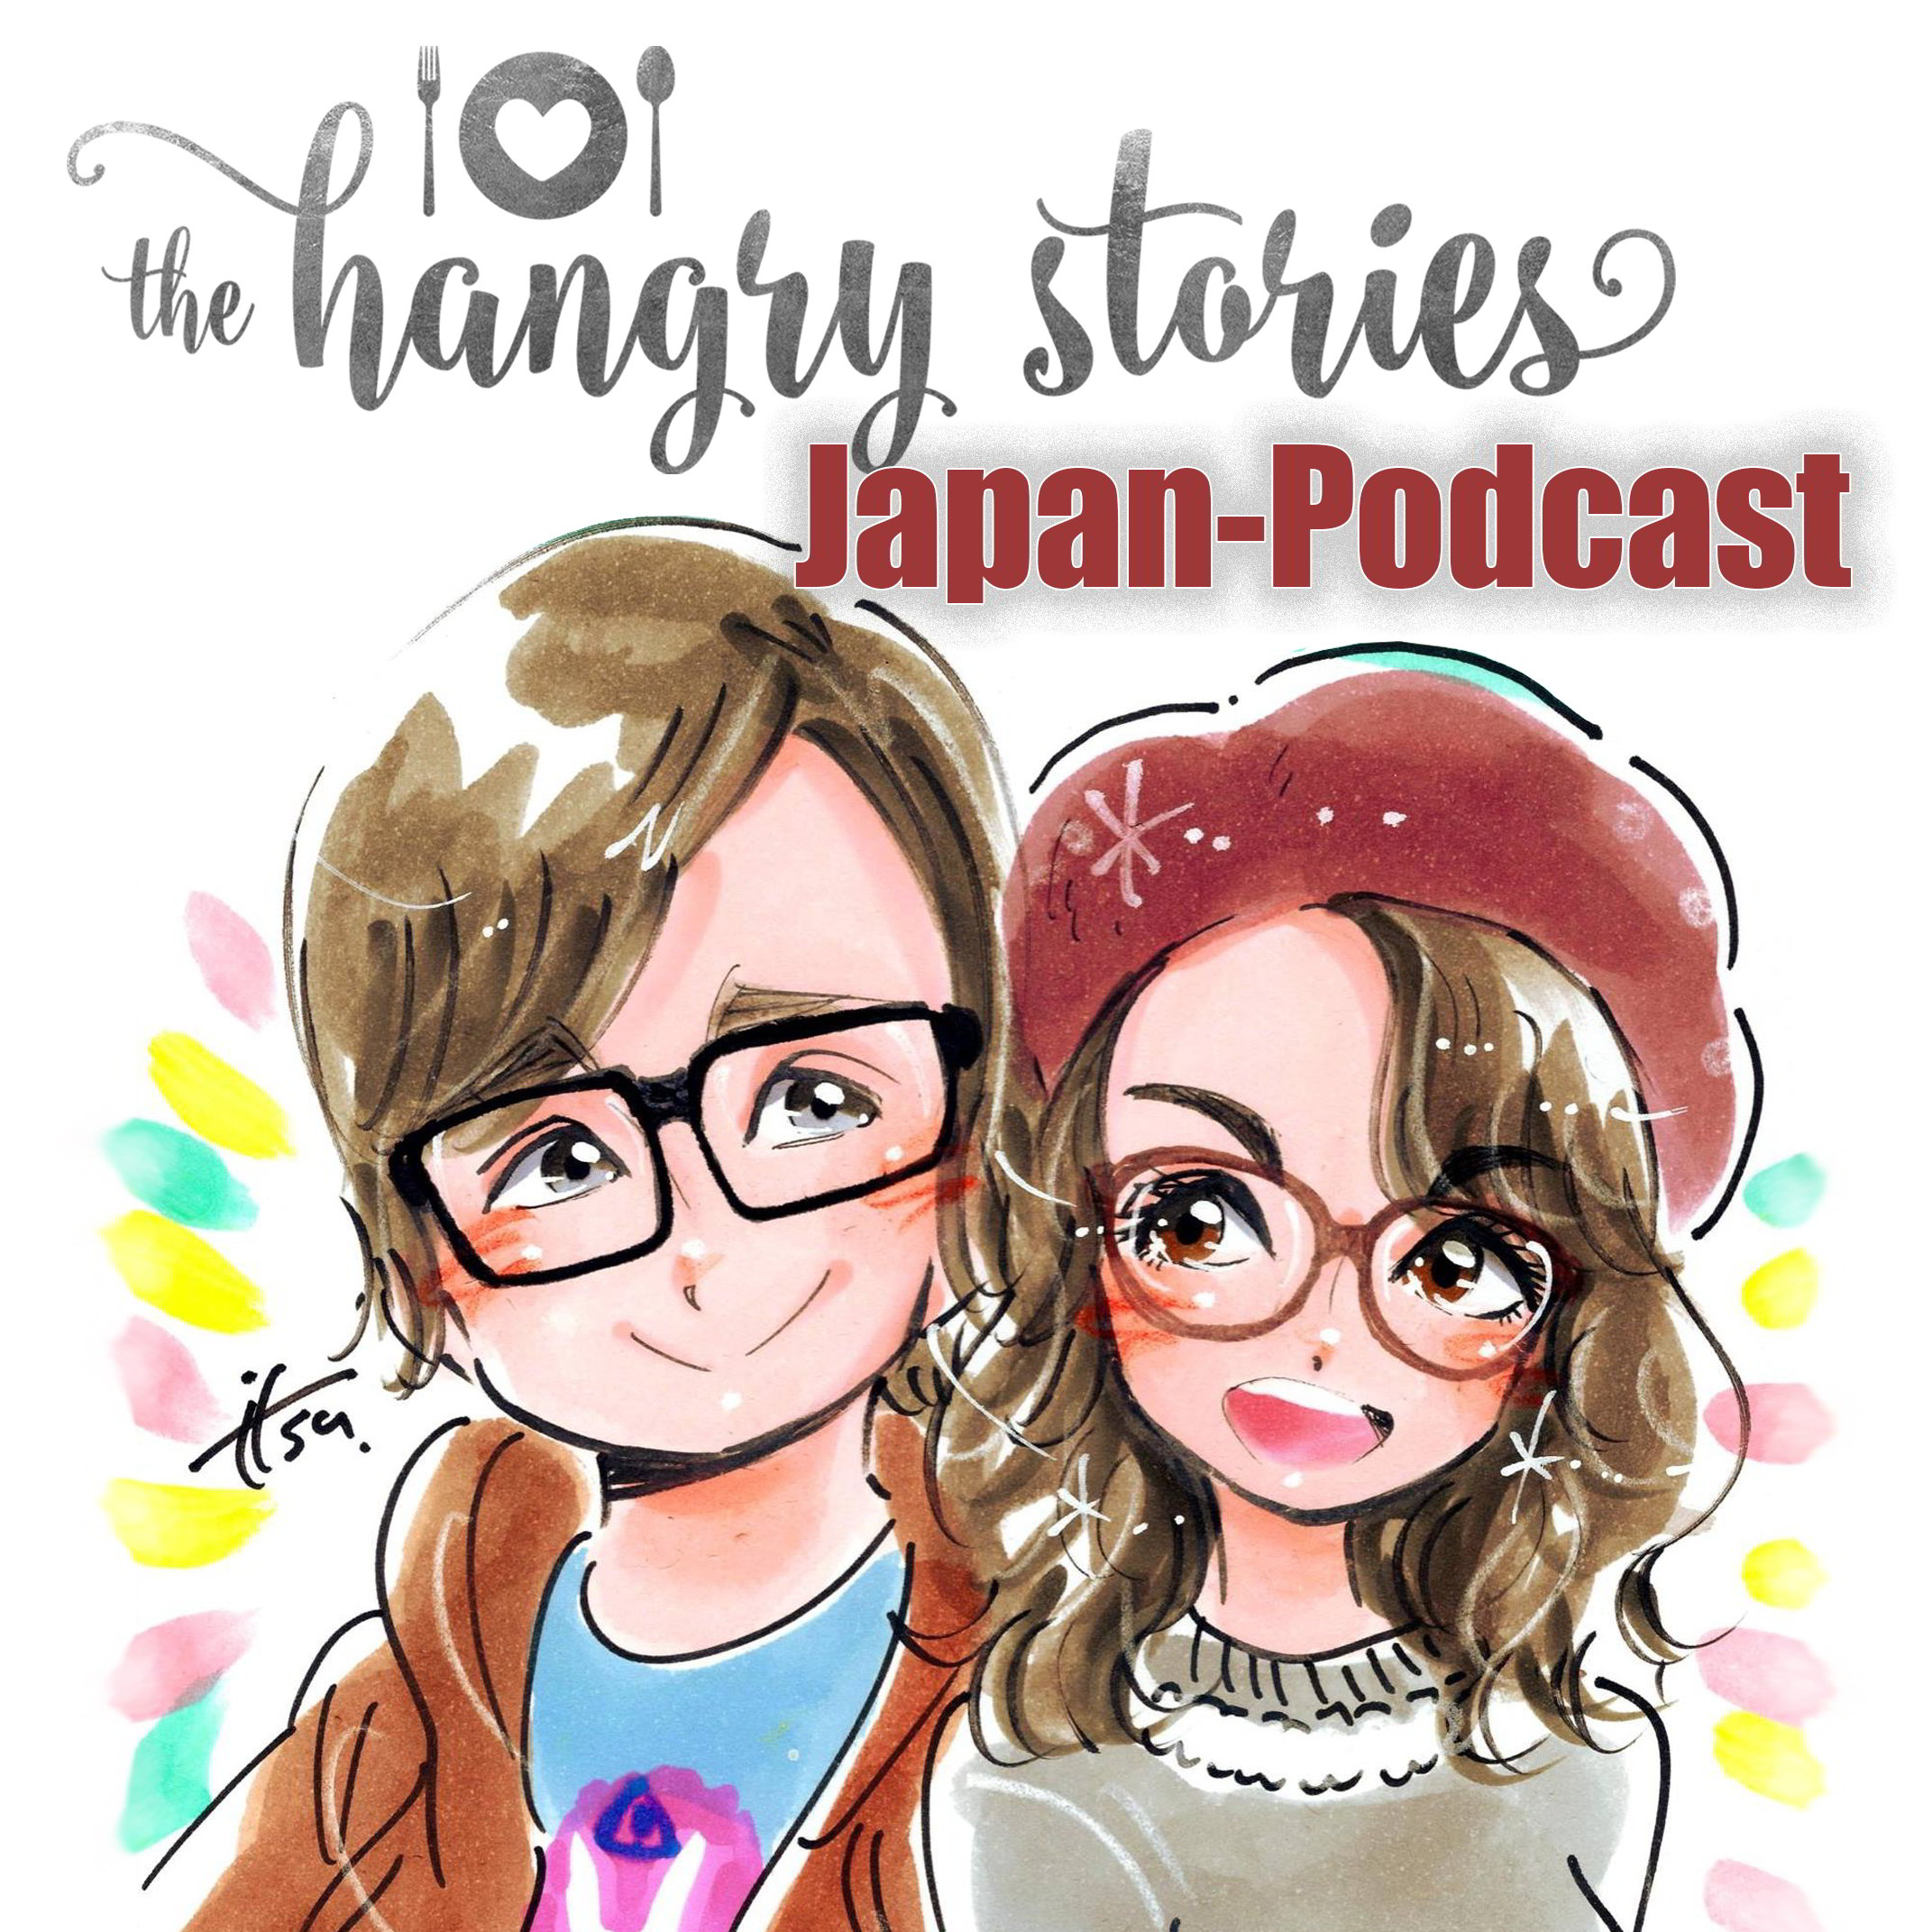 The Hangry Stories Japan-Podcast